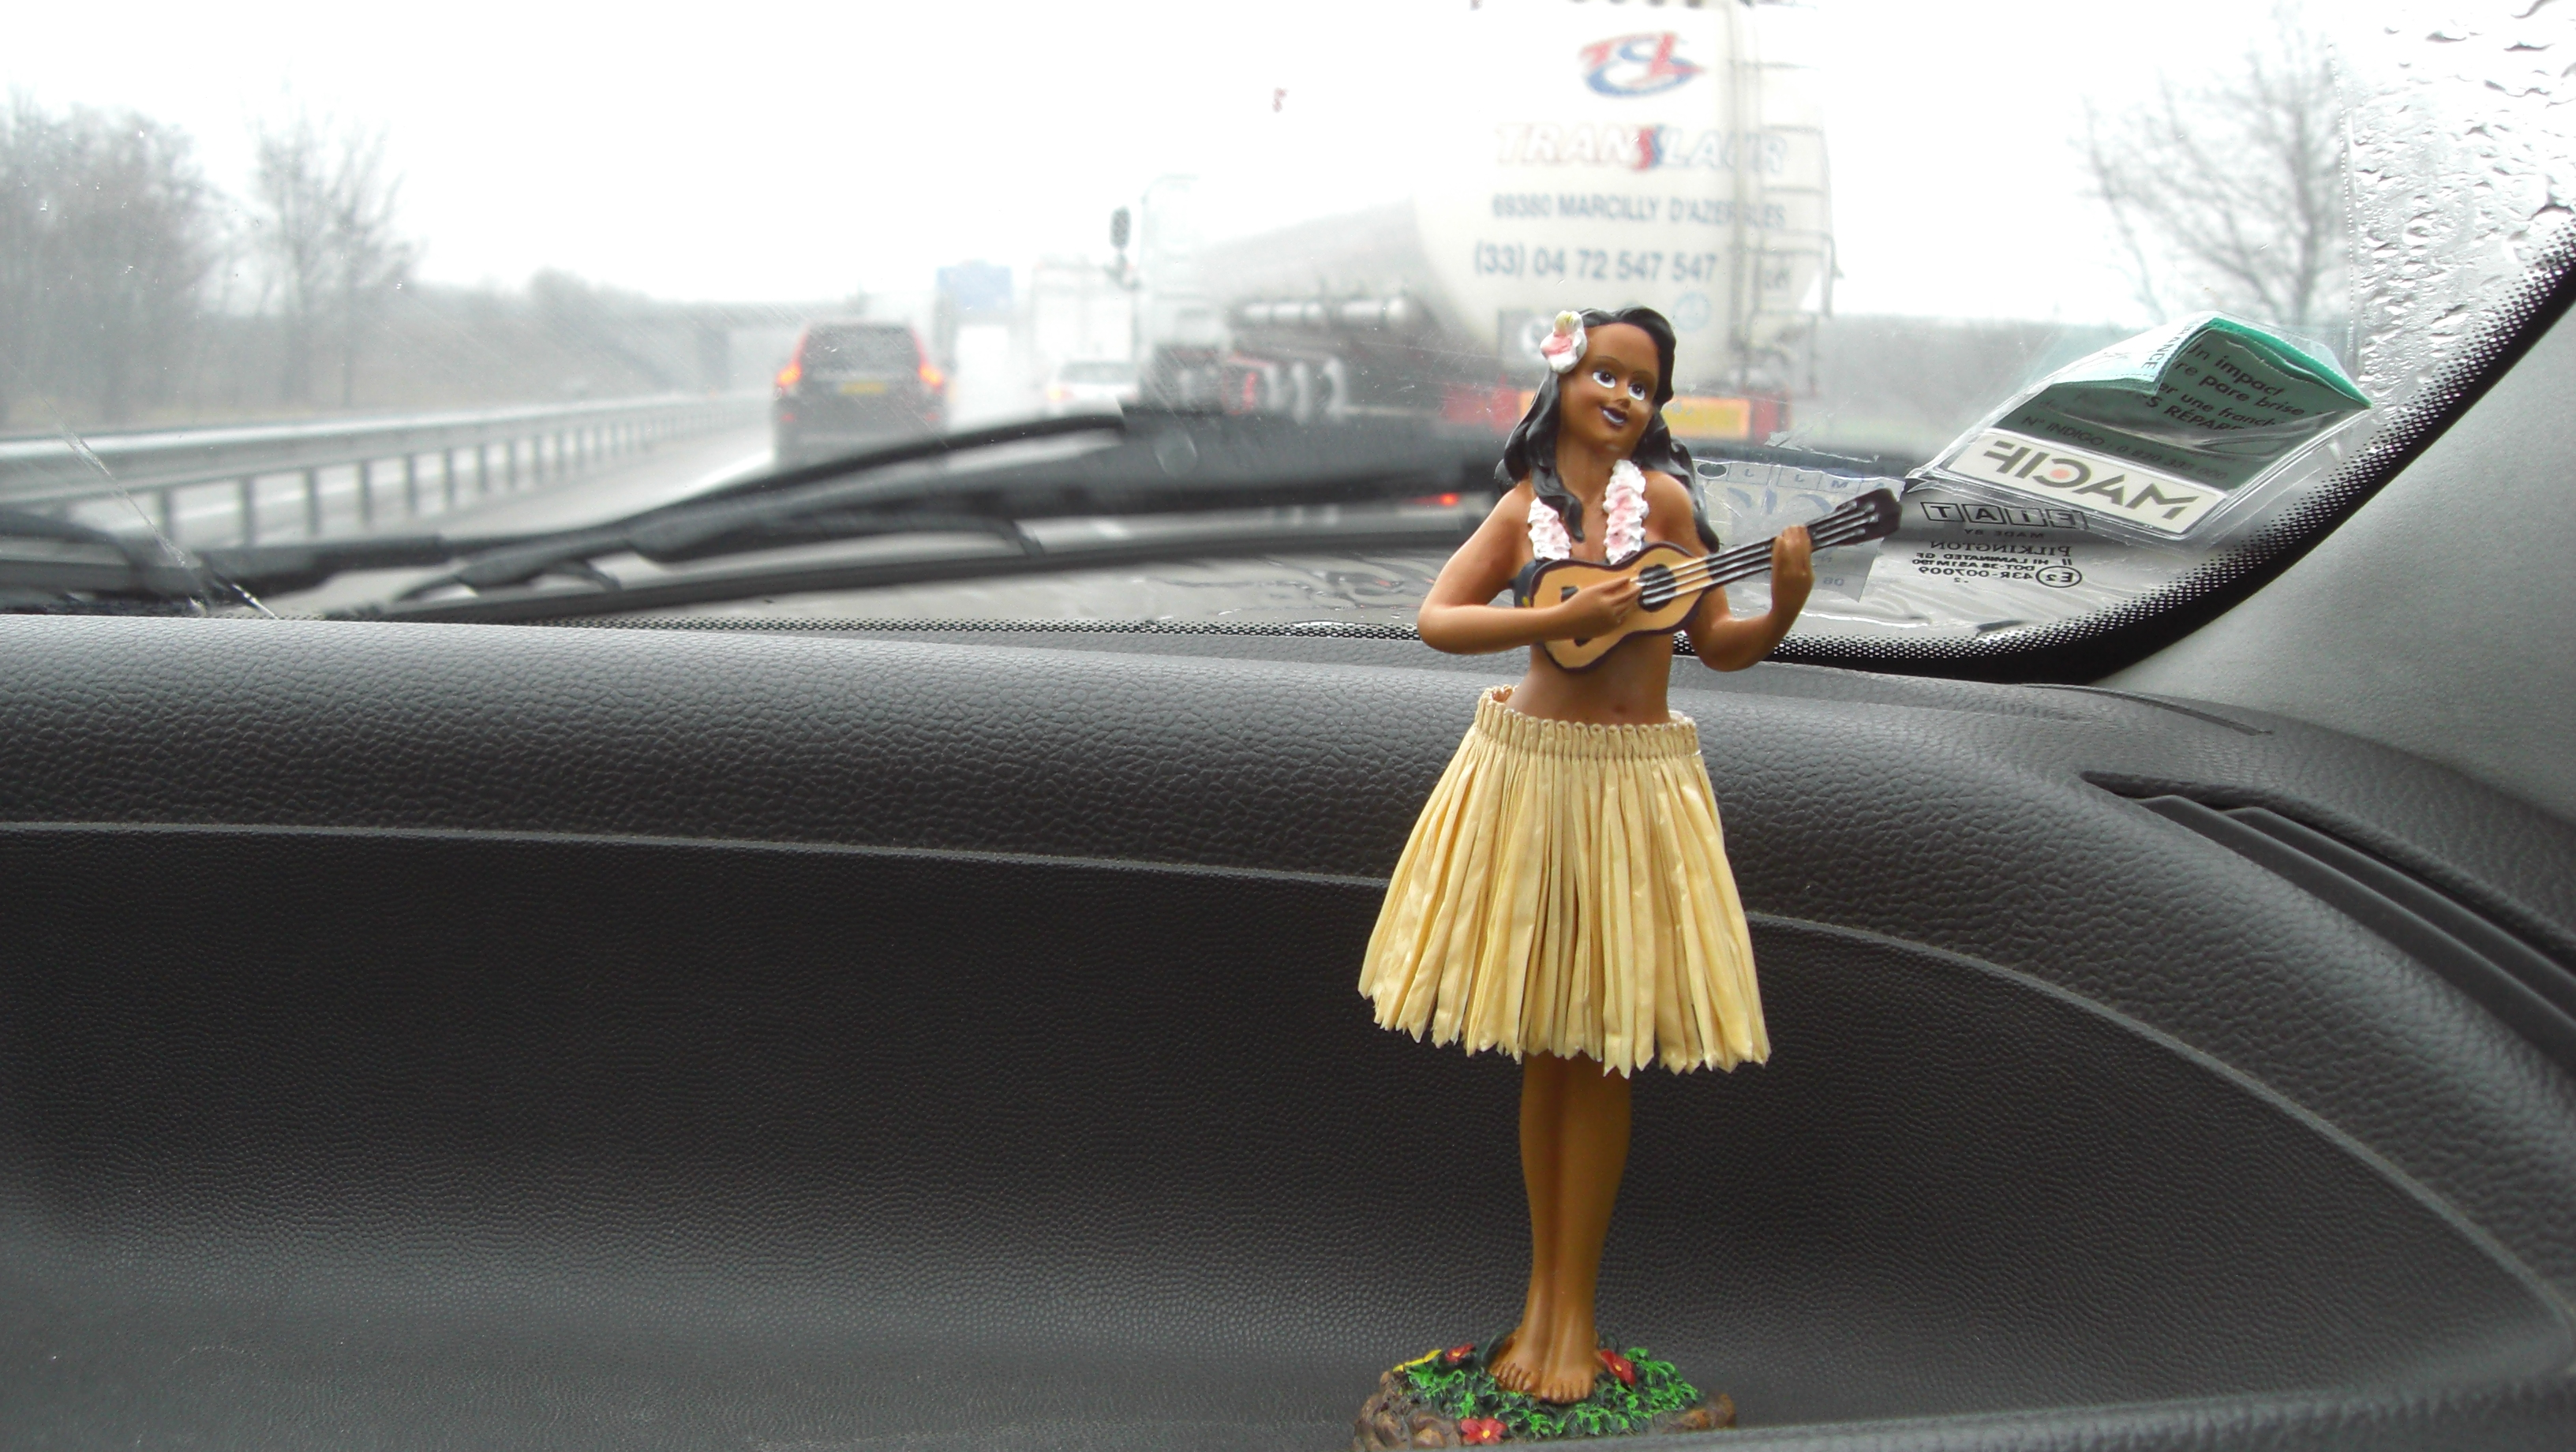 watch social justice warrior harasses lyft driver over hula doll